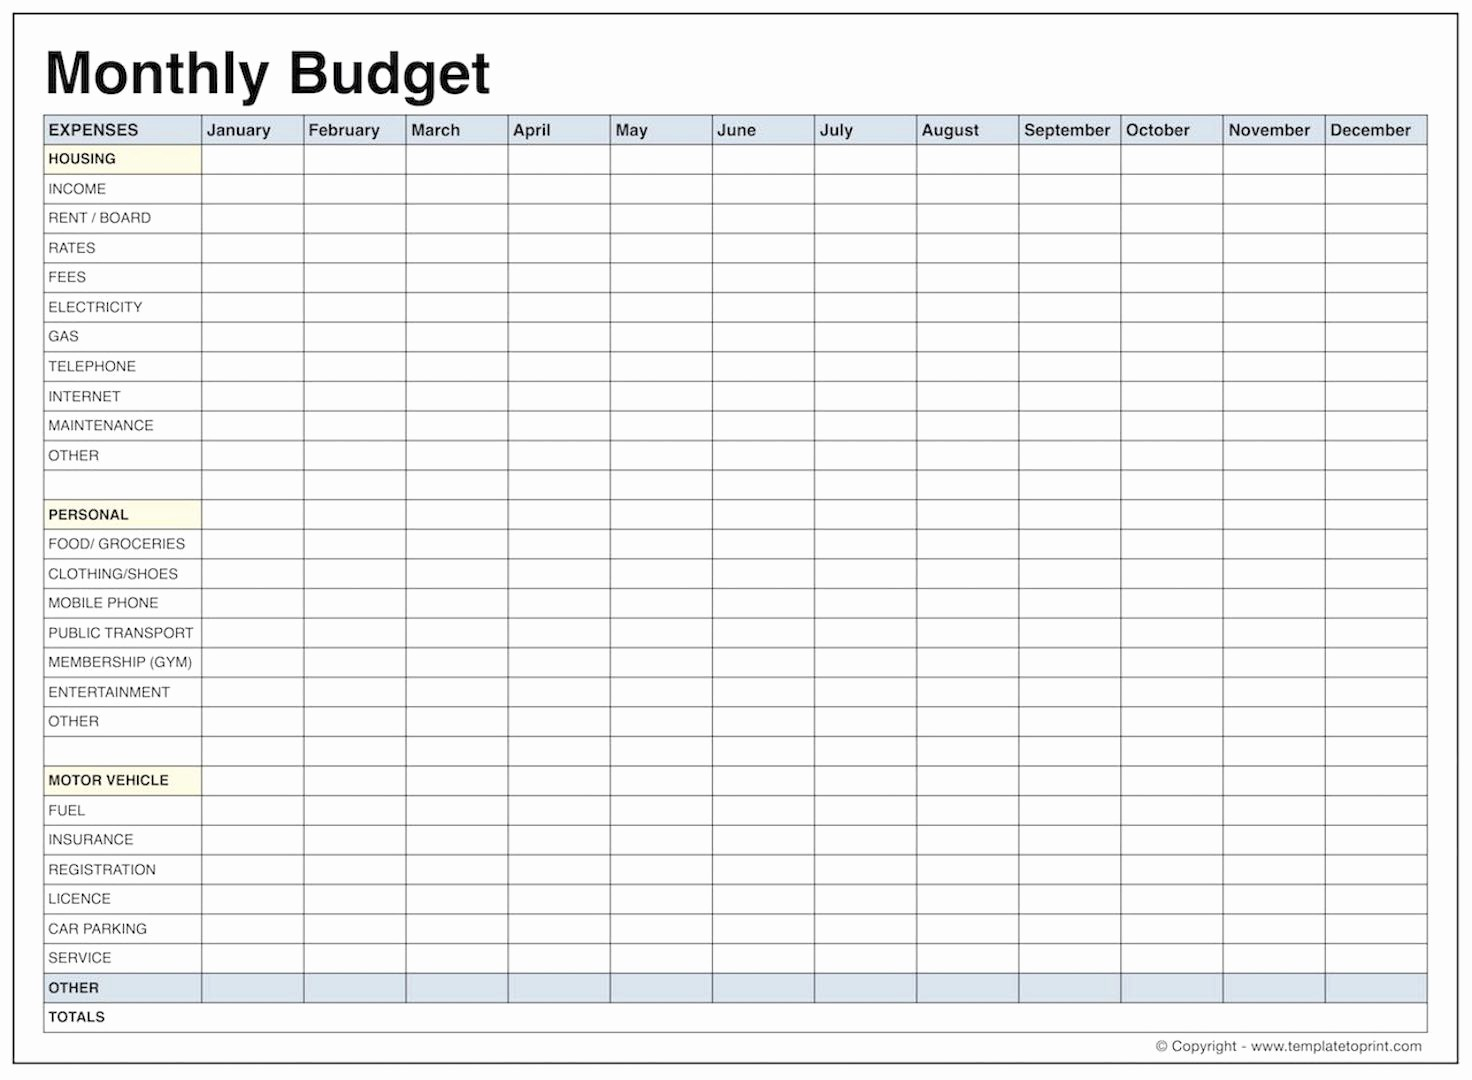 Free Monthly Budget Template